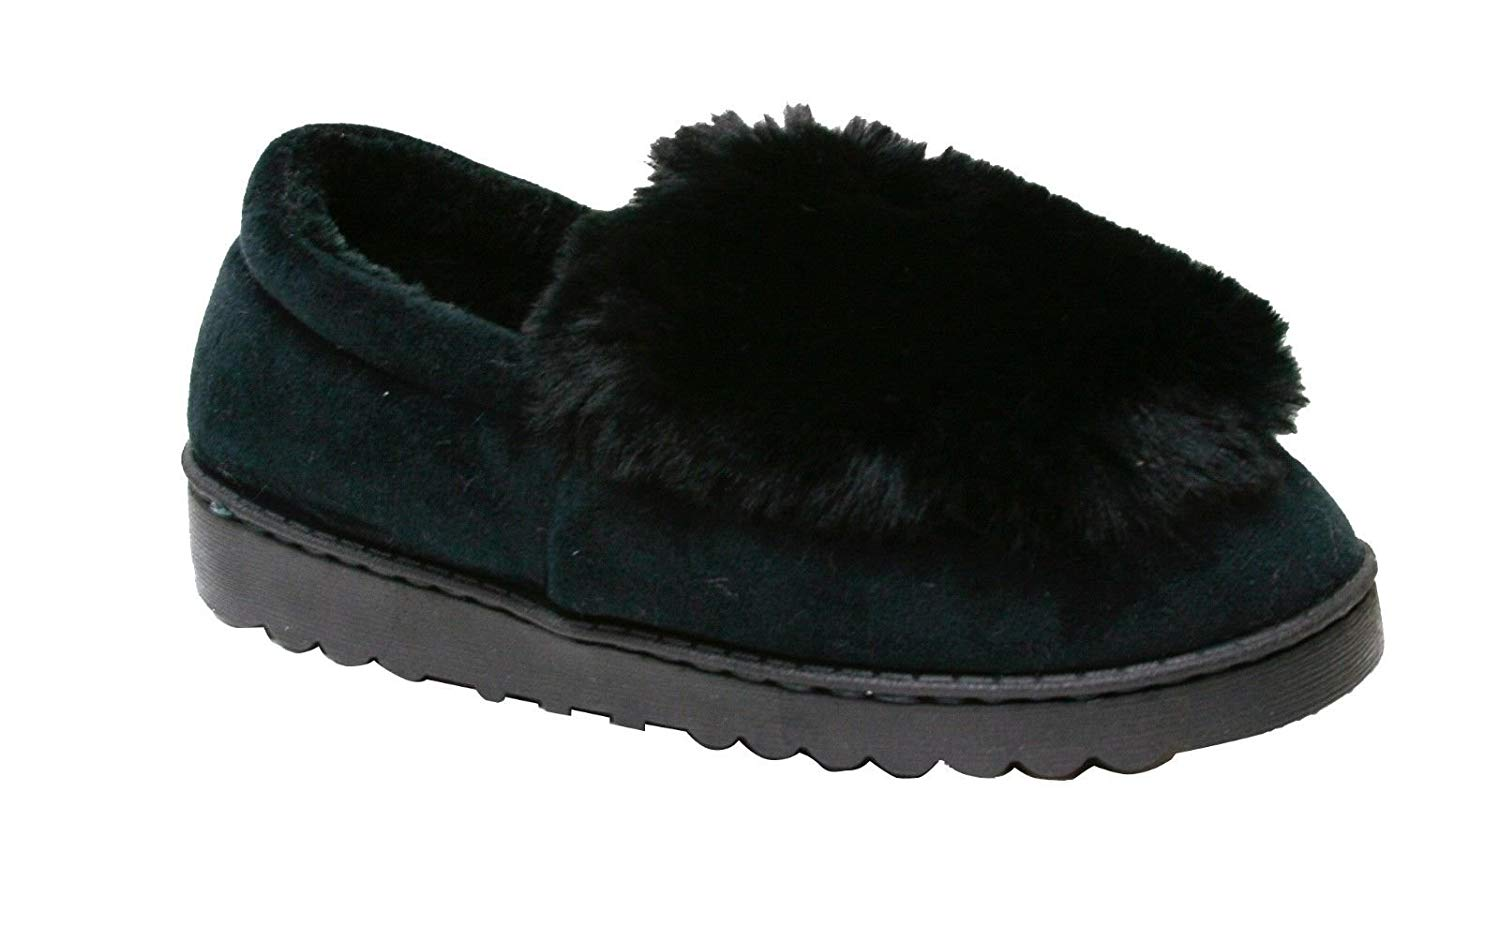 18fa5331b573 Happy Bull Slippers for Womens Moccasin Slip On Indoor Shoes Faux Fur  Bootie (Susy)